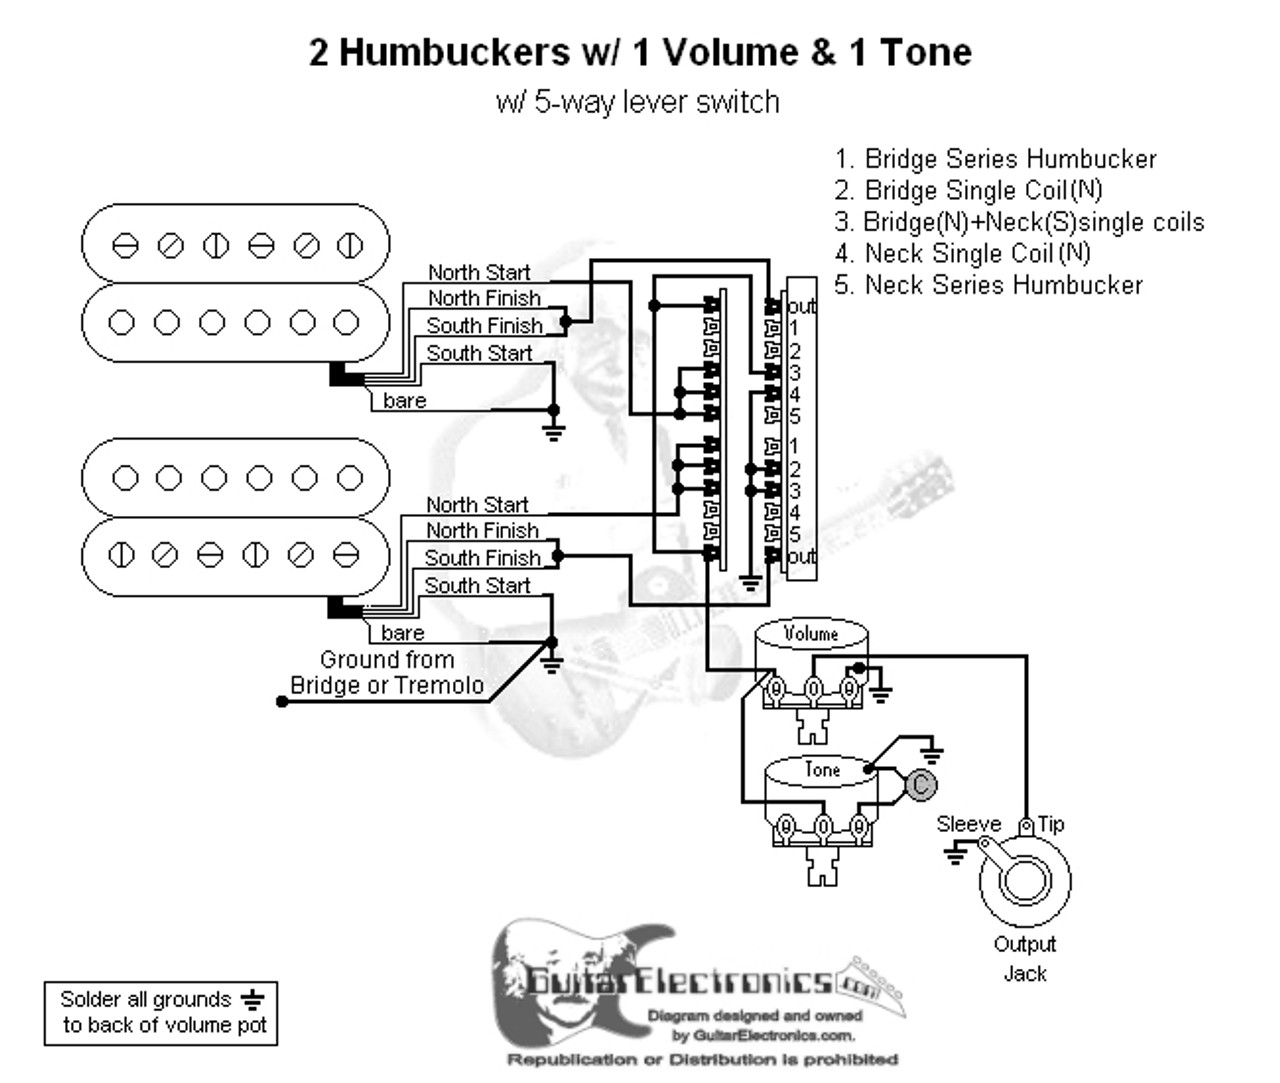 hight resolution of 2 humbuckers 5 way lever switch 1 volume 1 tone 01 wiring diagram 2 humbuckers 5way lever switch 1 volume 1 tone 03